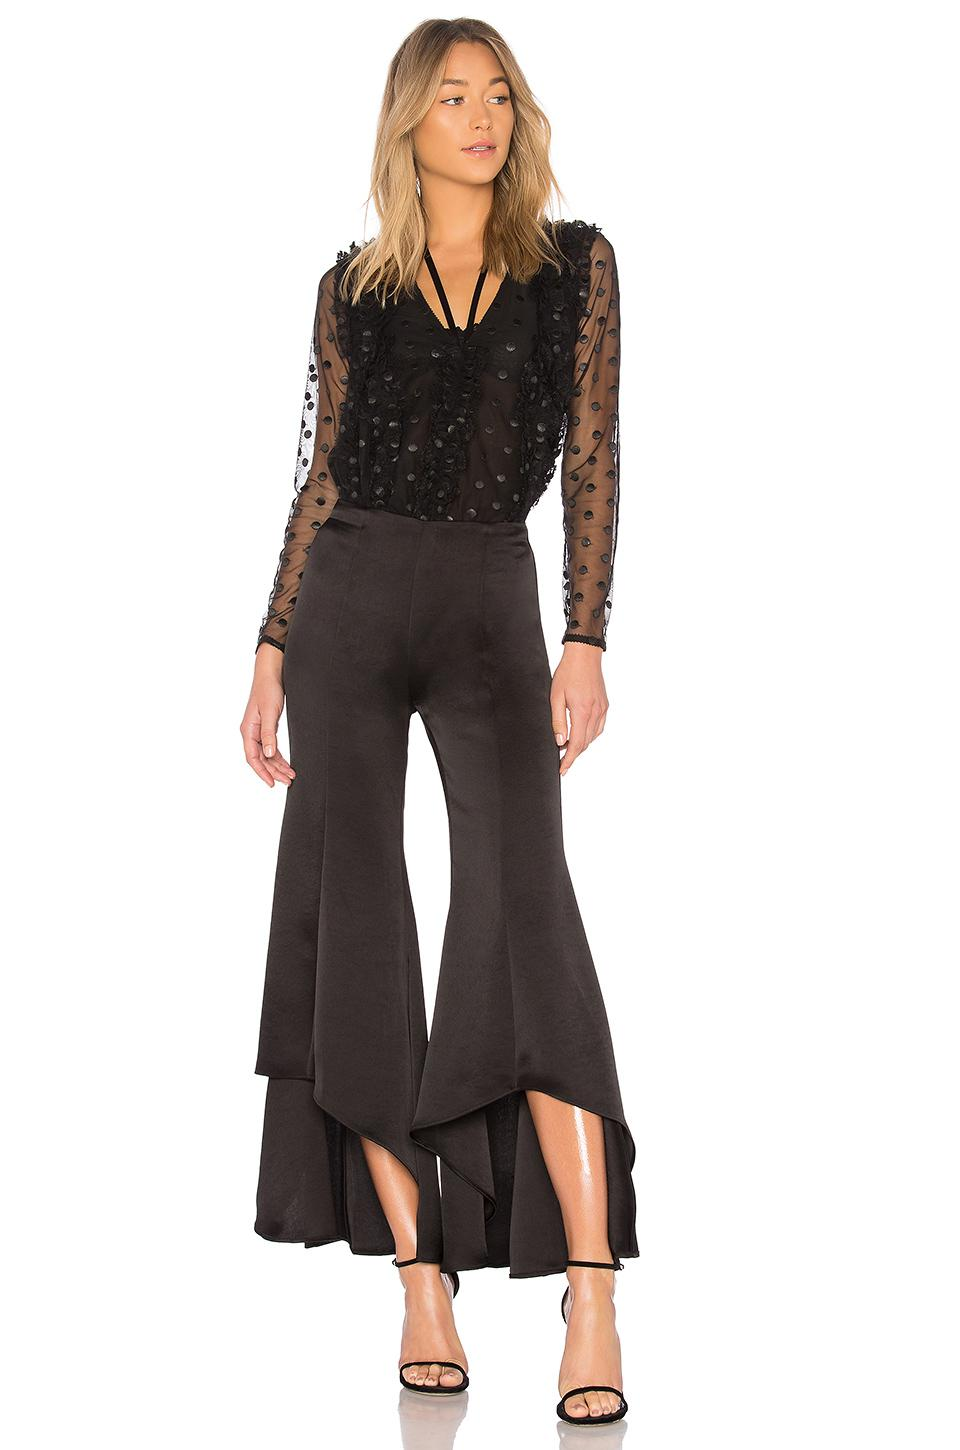 Alexis Synthetic Emer Pant in Black